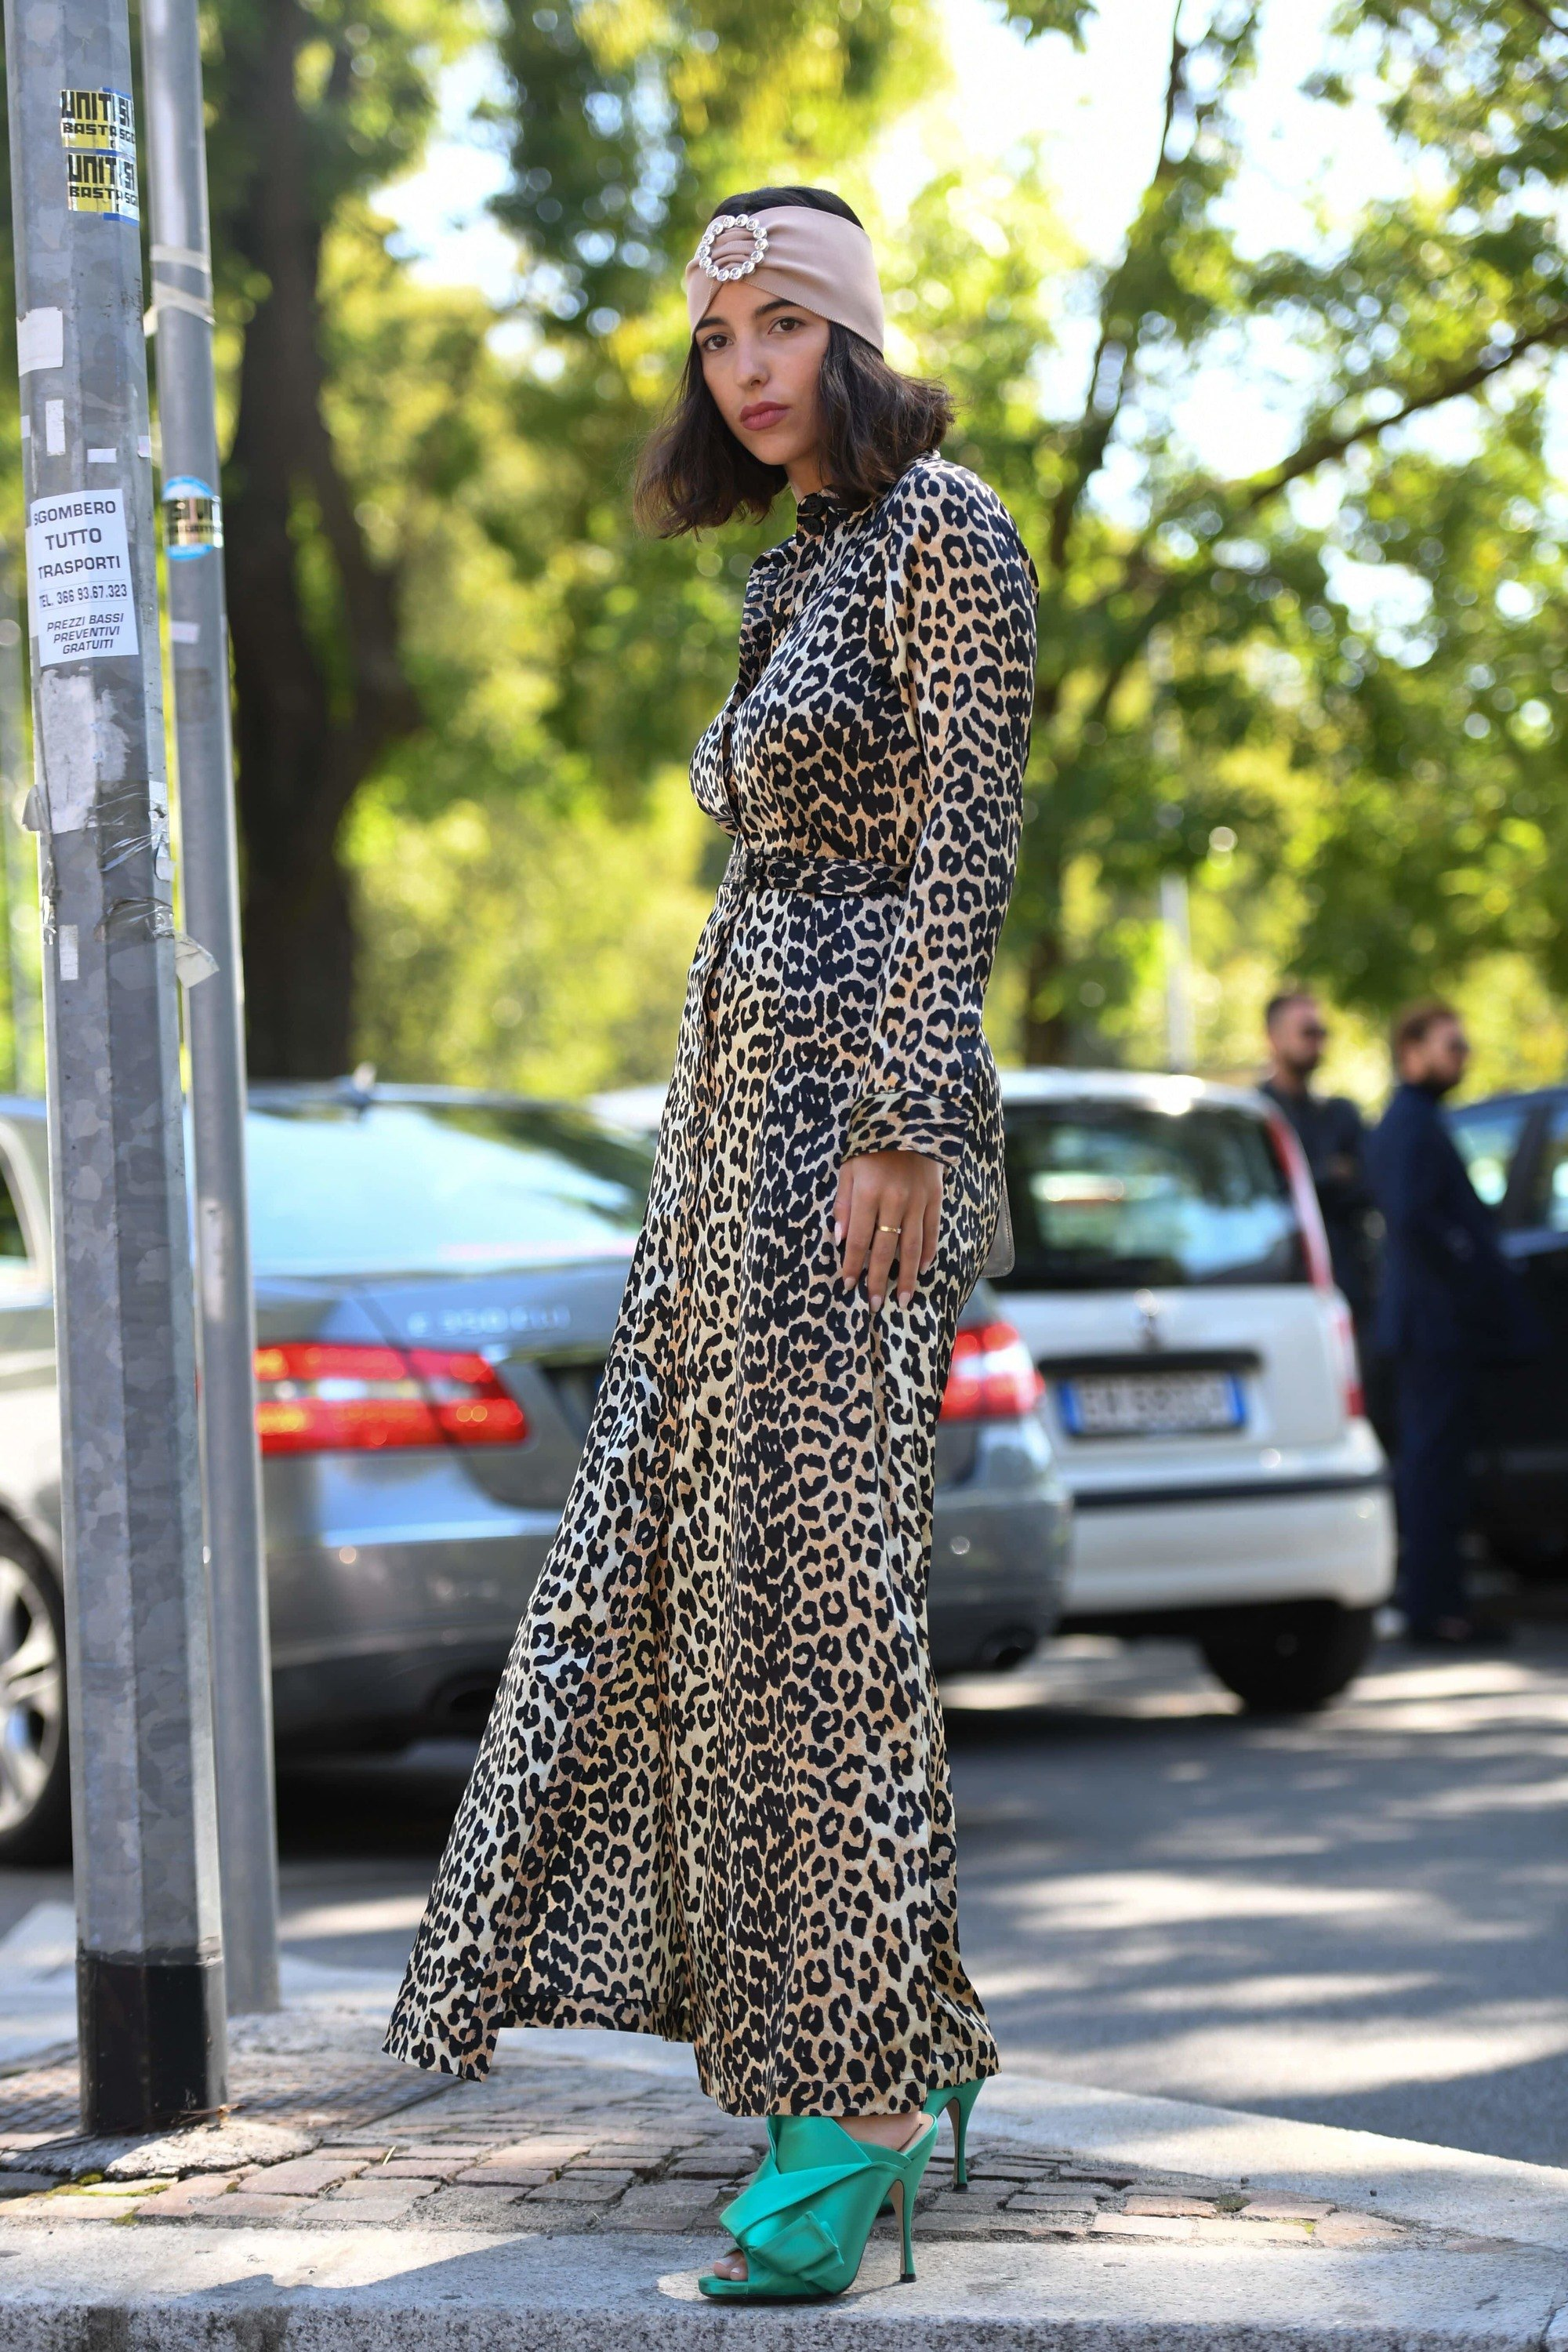 street styler at milan fashion week in a long maxi dress and embellished hair wrap